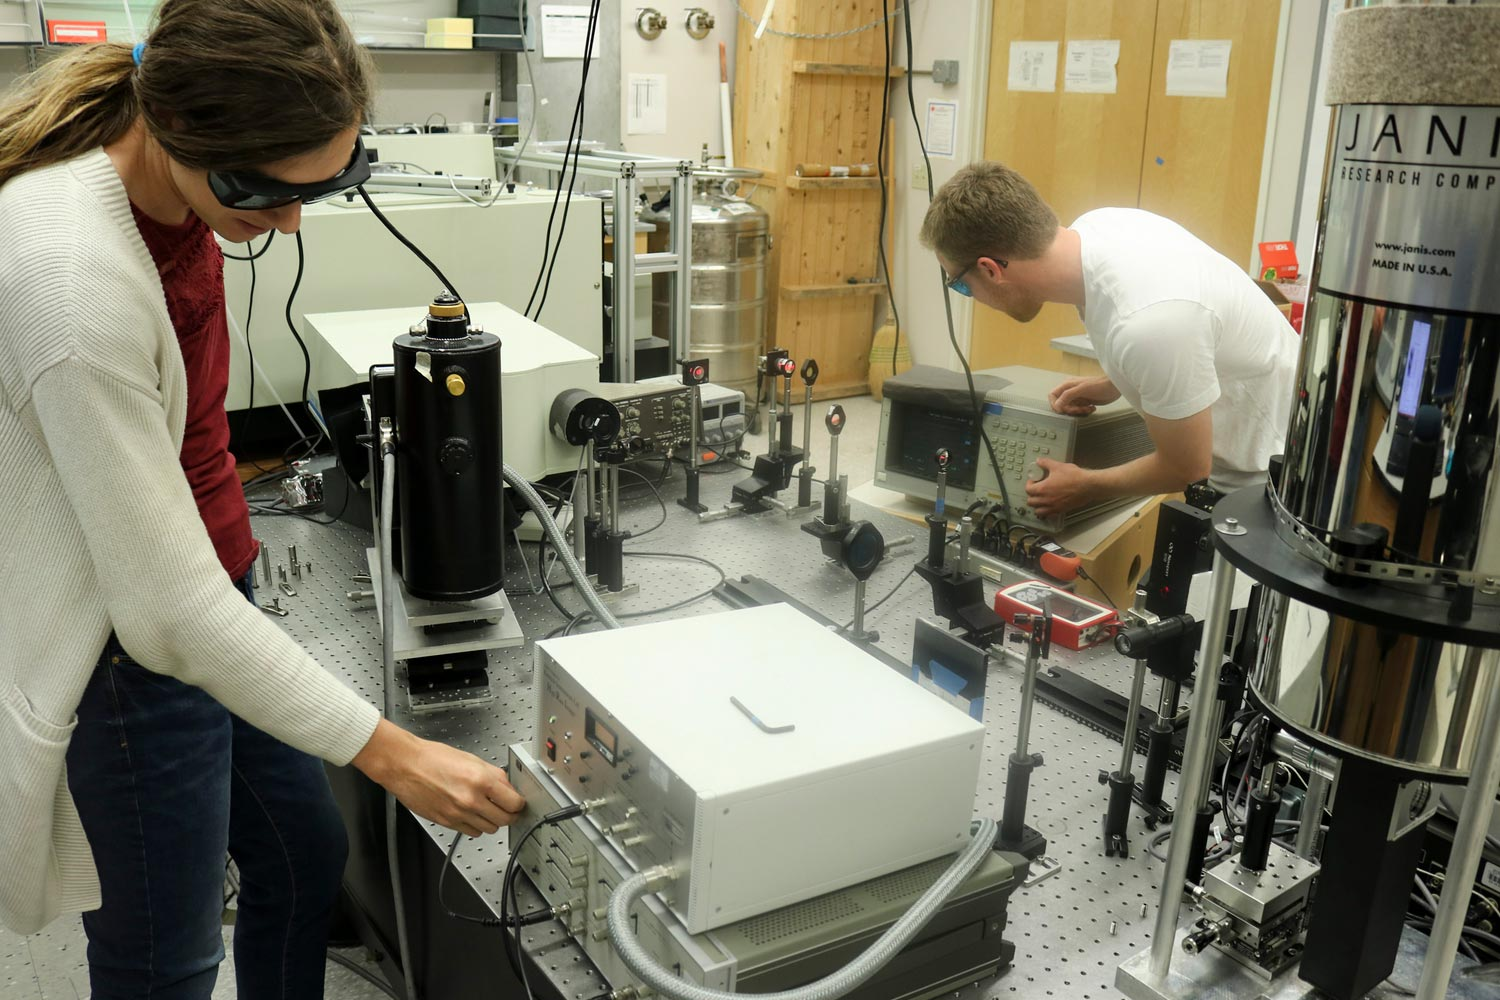 Ph.D. candidates Erica Calman and Lewis Fowler-Gerace adjust the electronics and optics used for the experiment